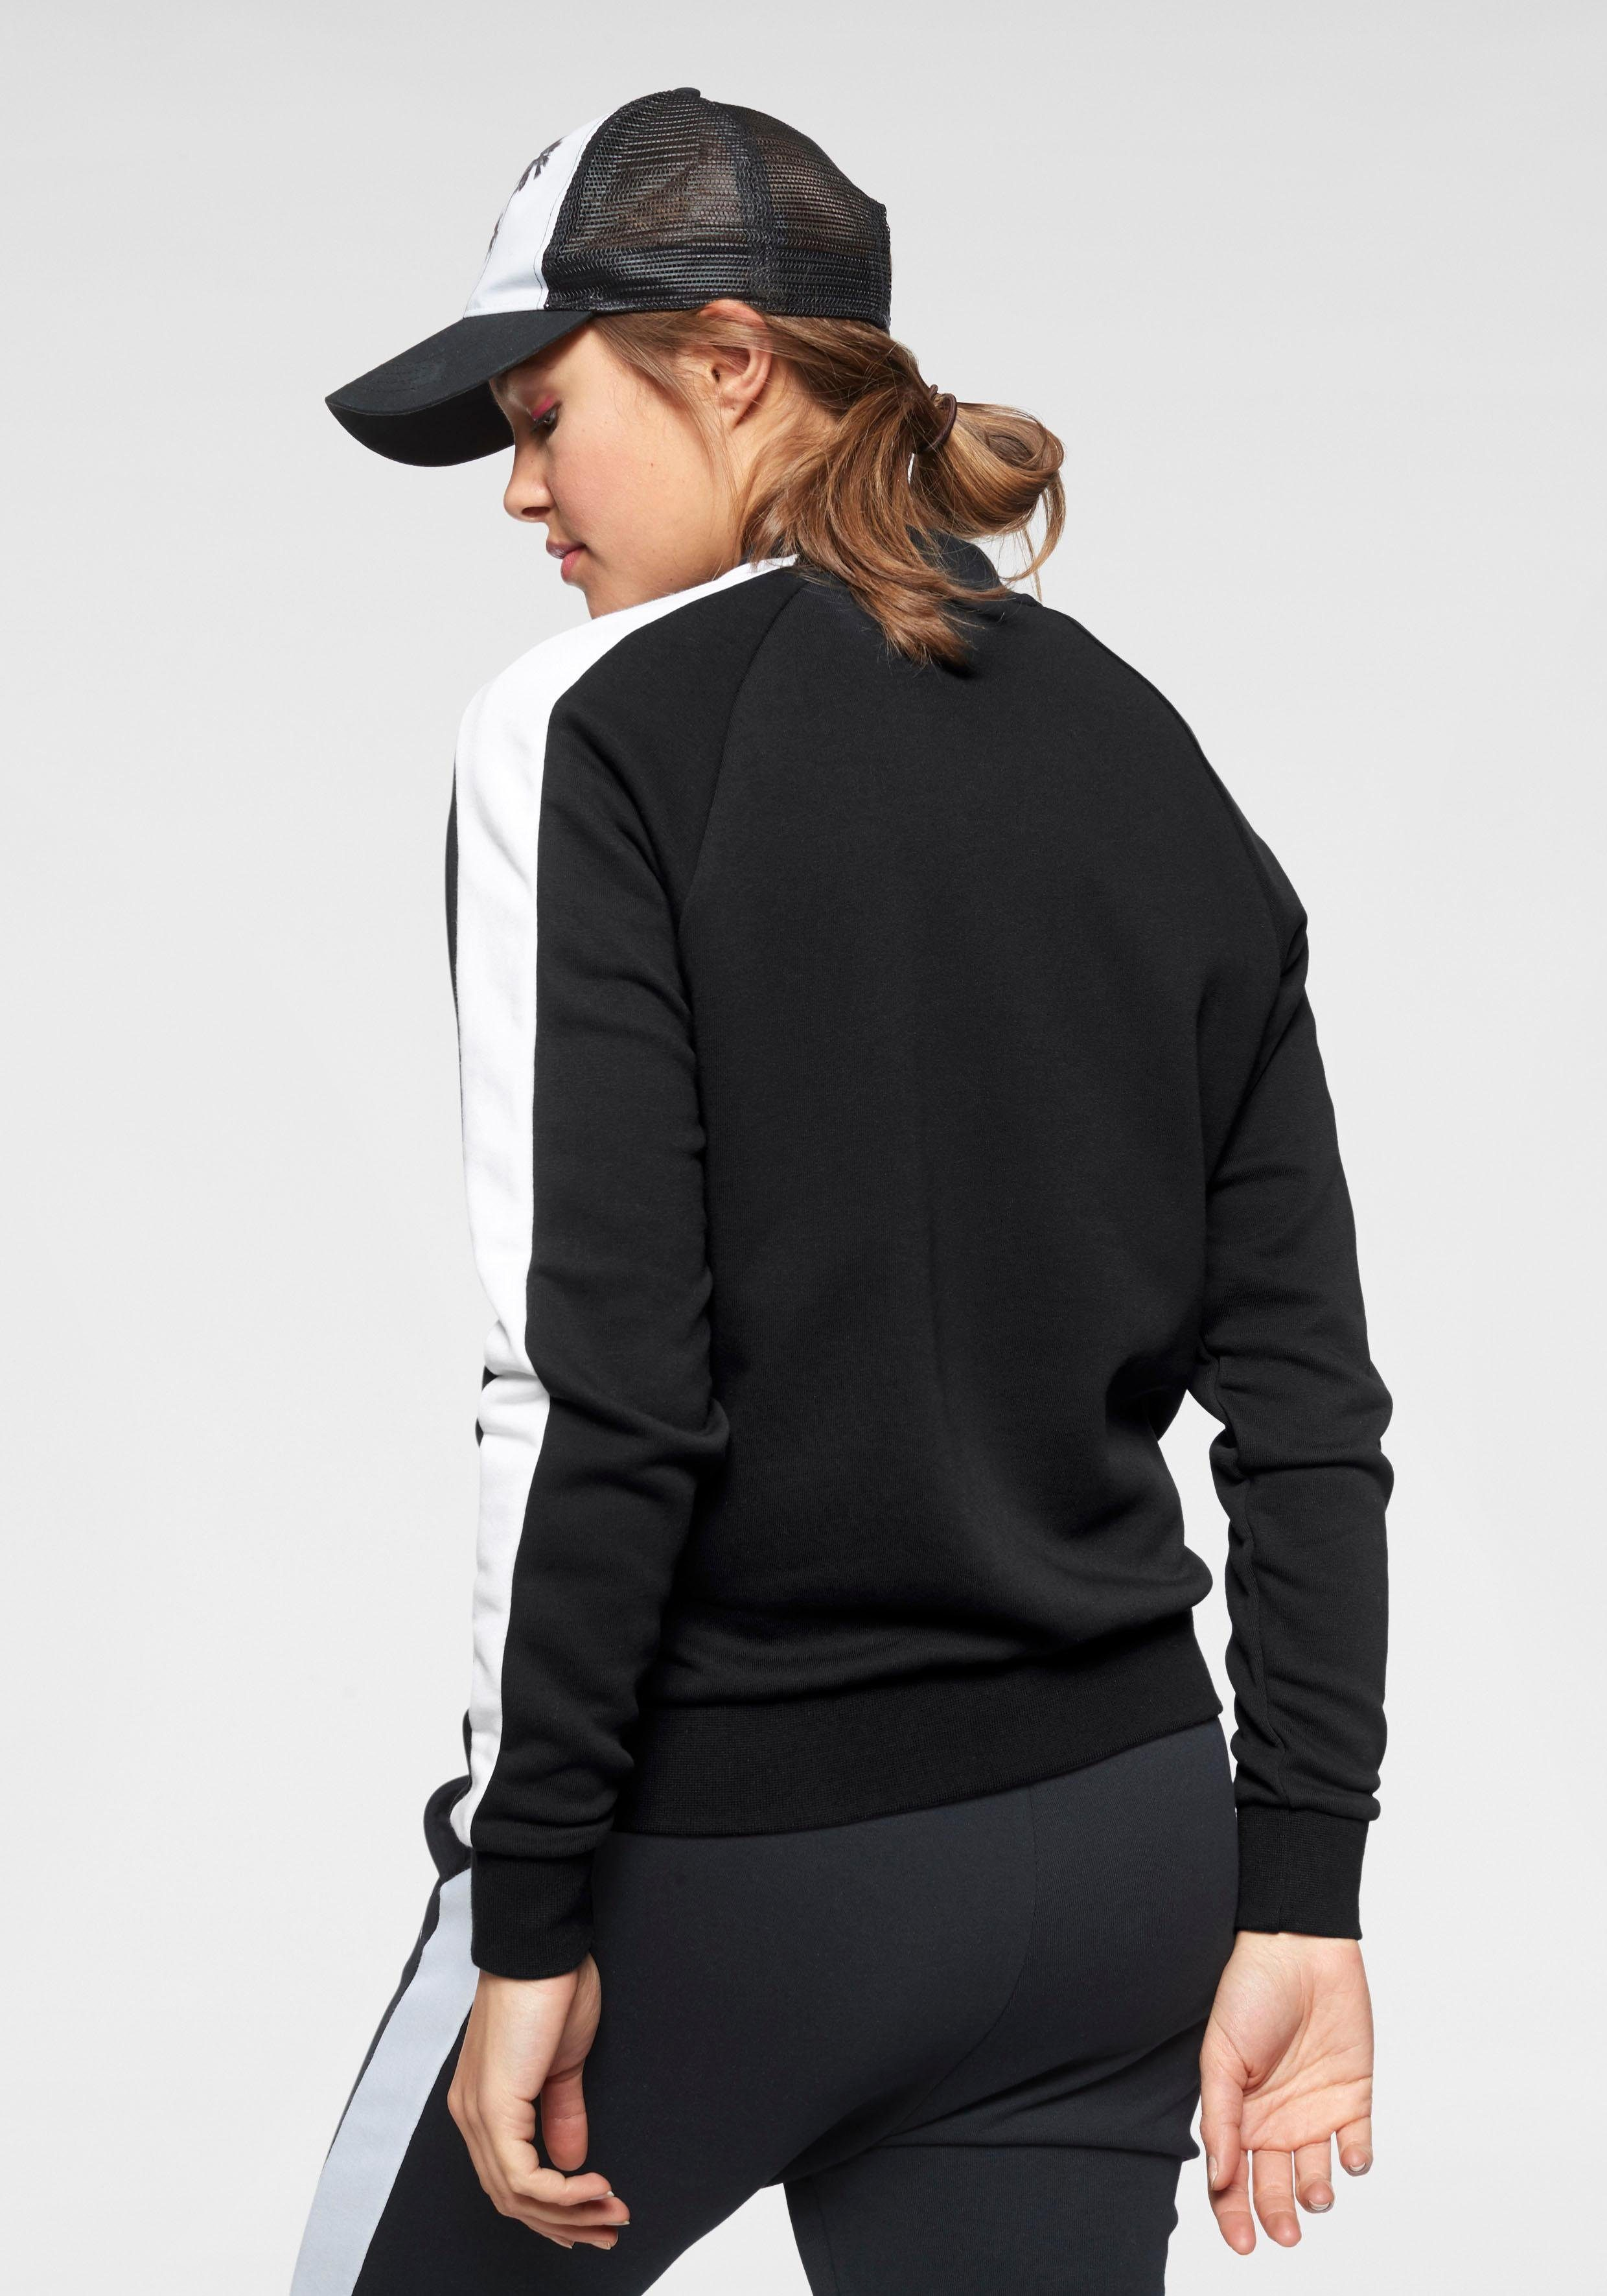 Buy Classics T7 Track Jacket FT Women's Outerwear from Puma